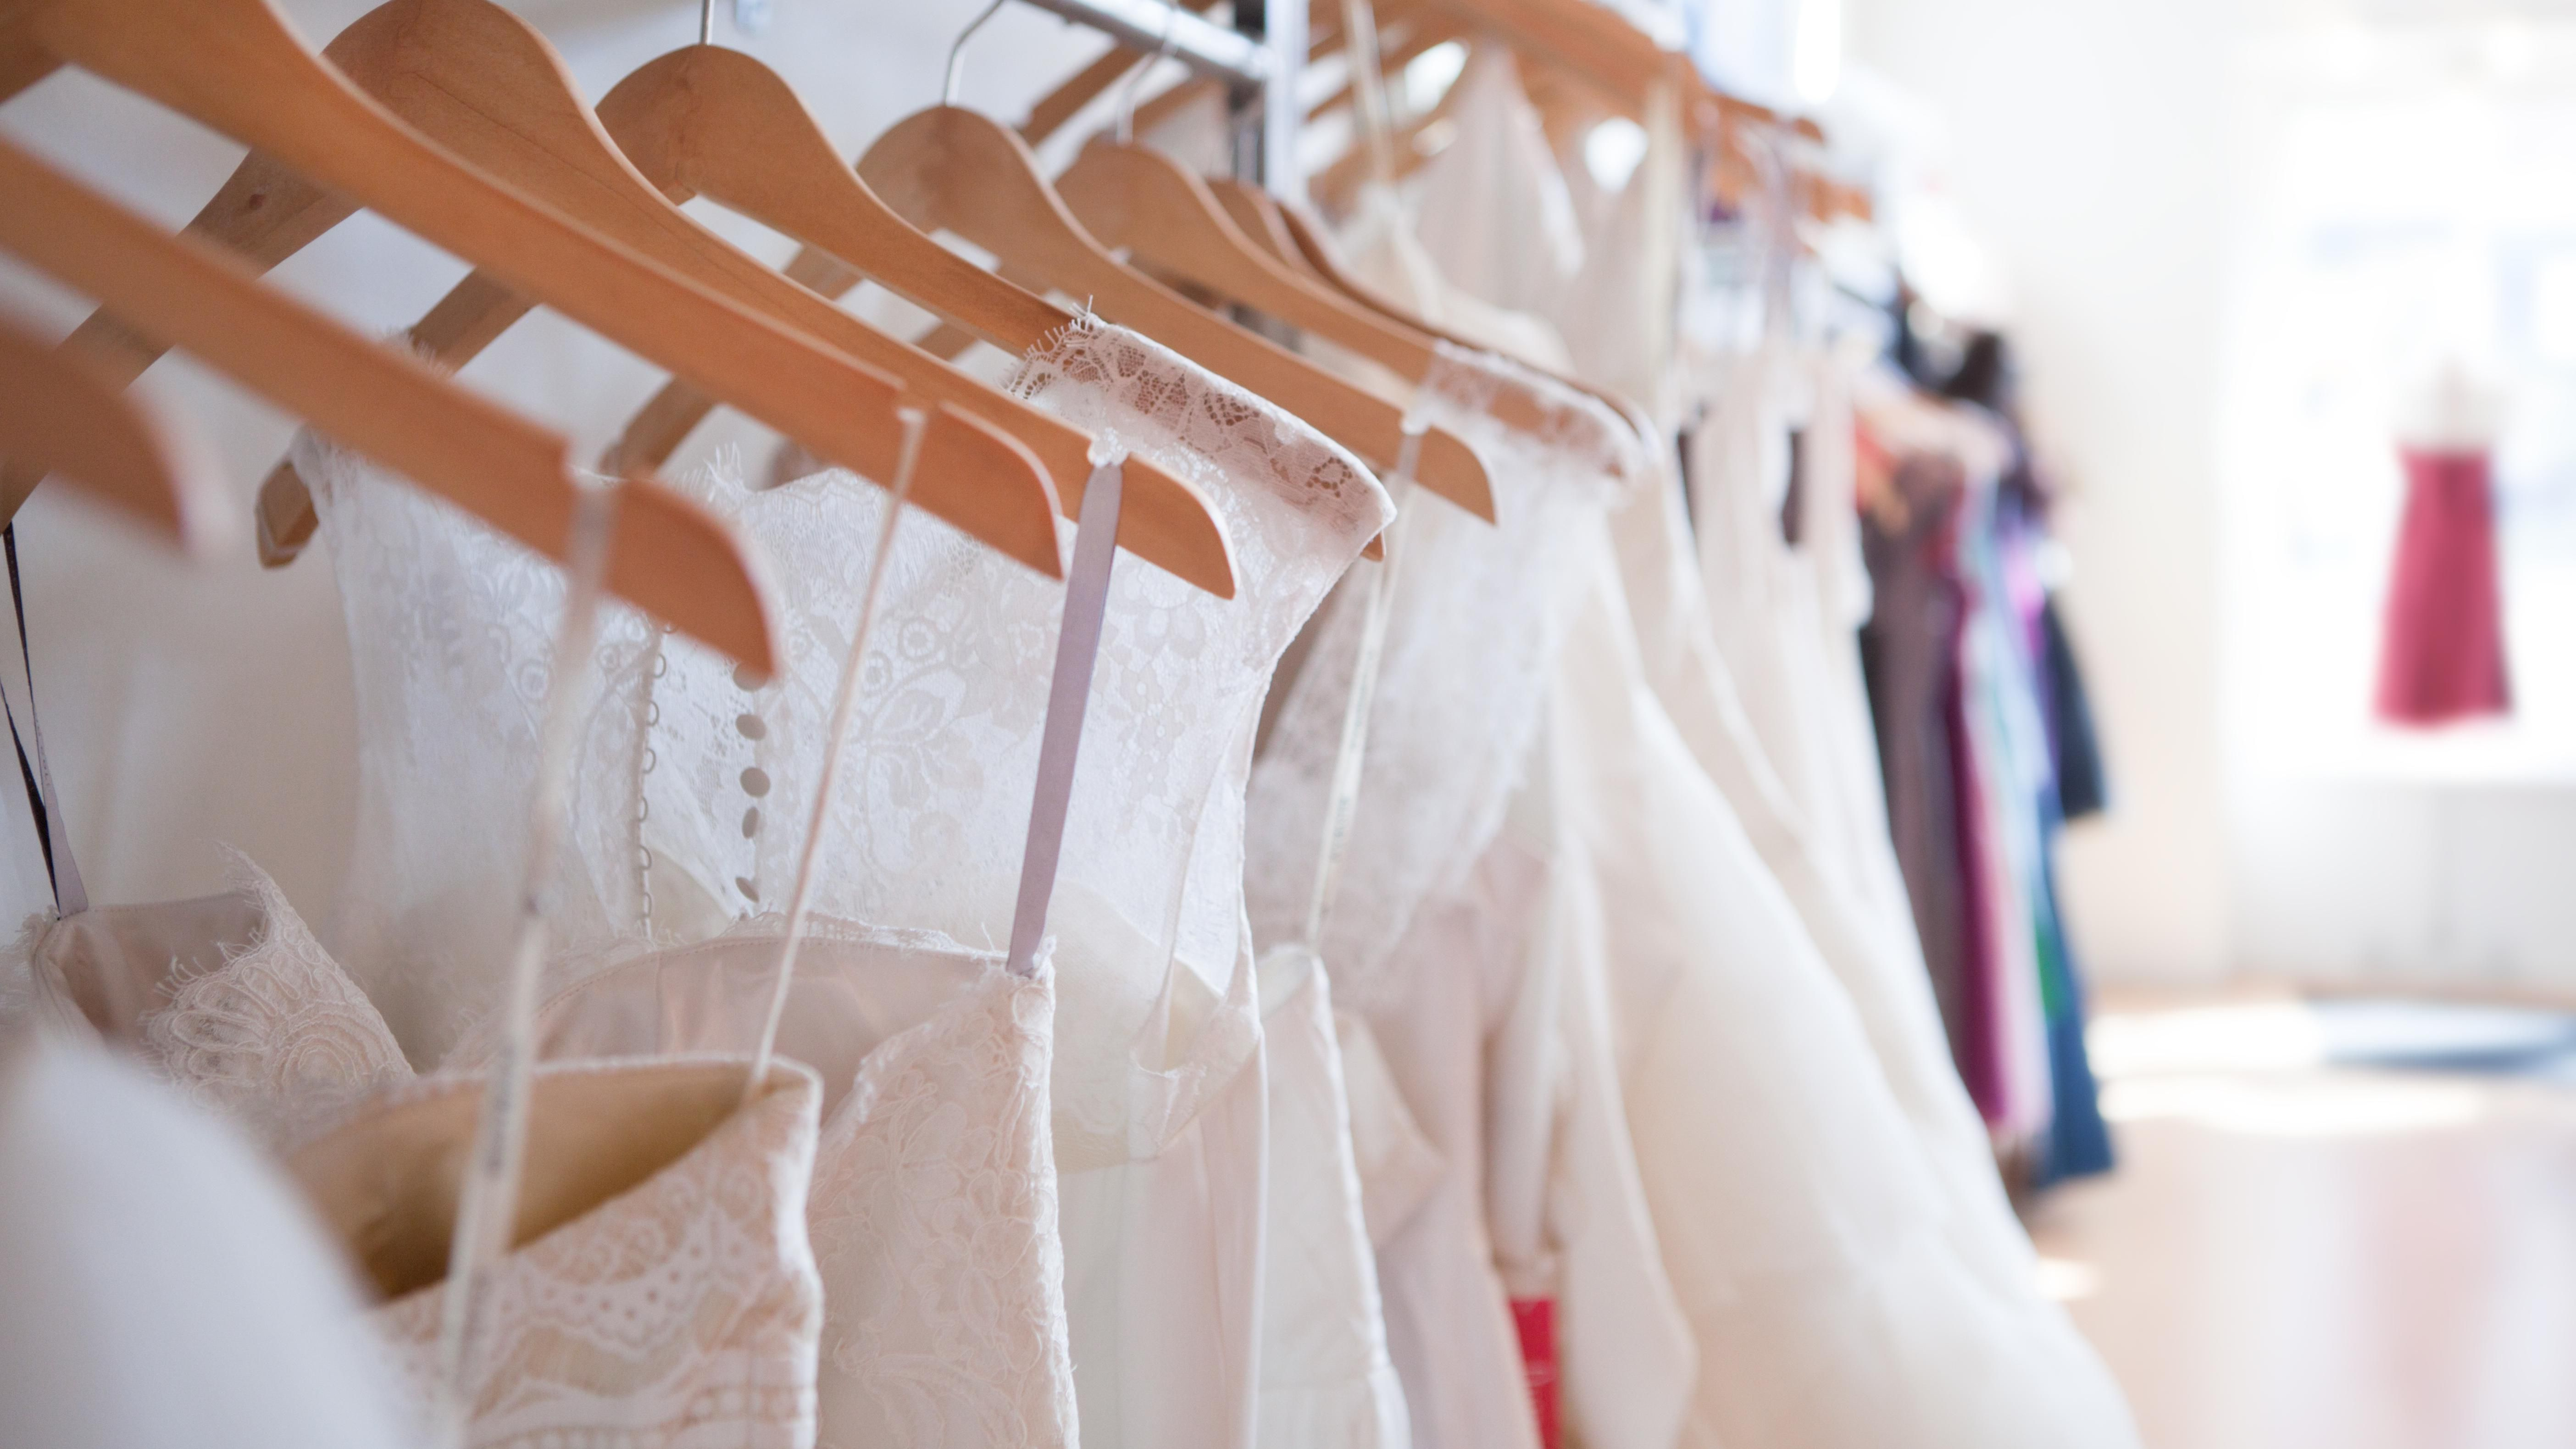 The Best Seattle Bridal Salons Brides Need To Know